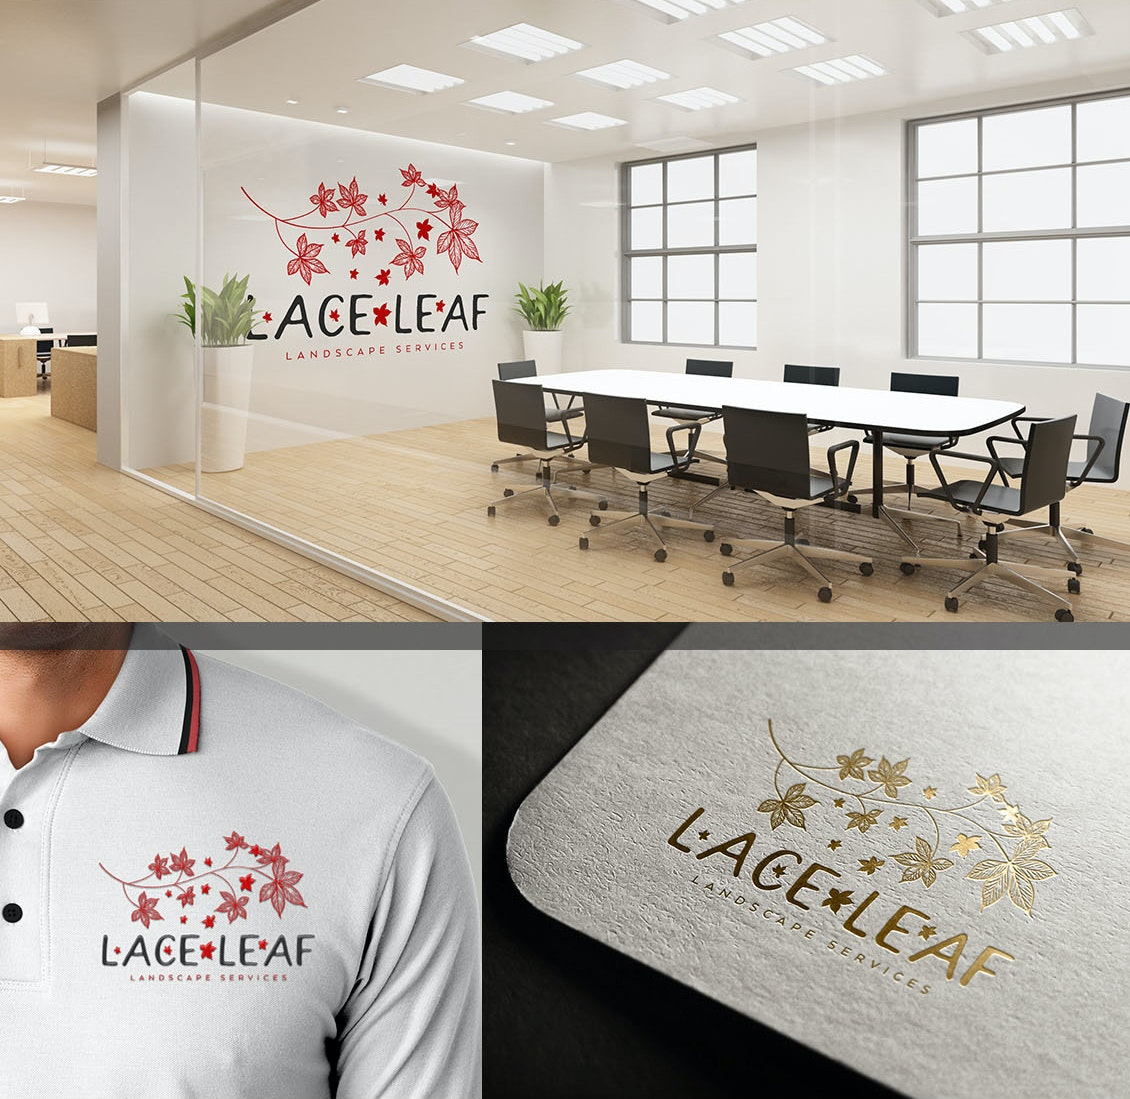 Logo design on multiple surfaces